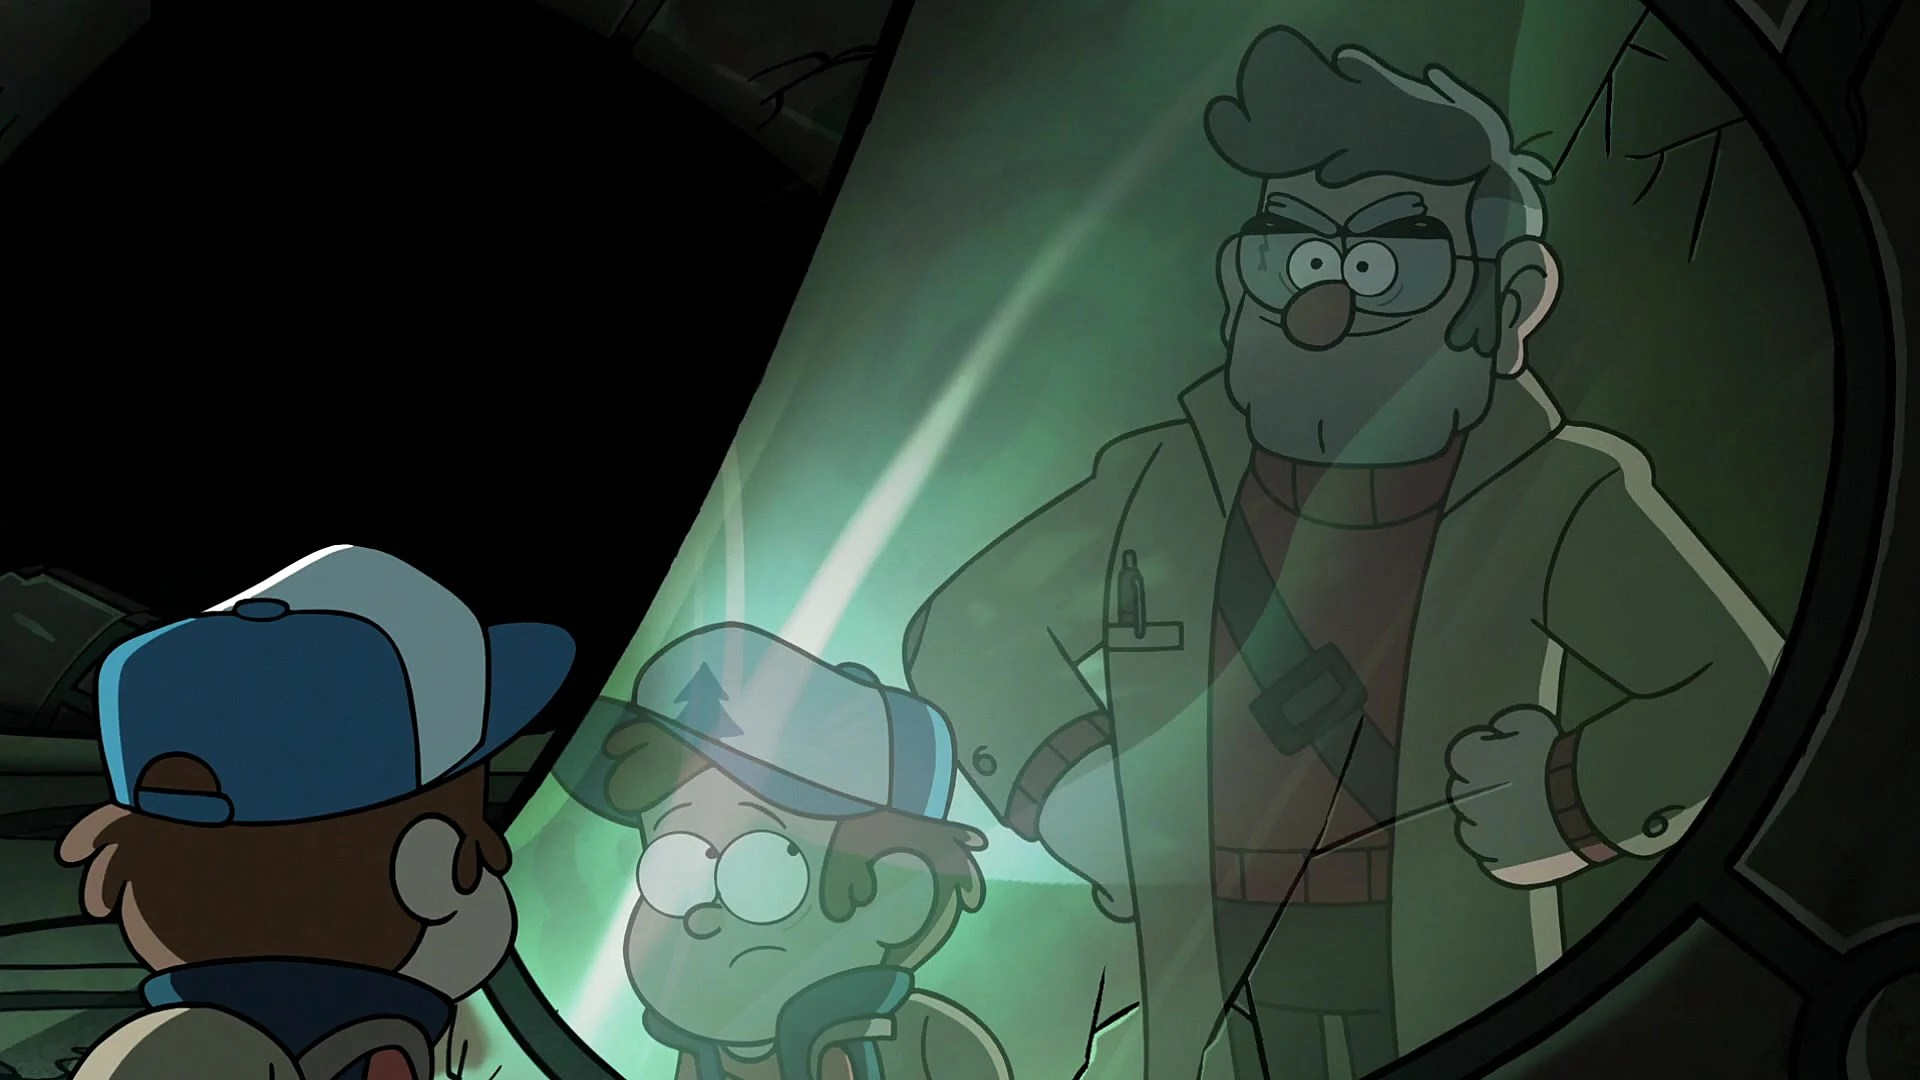 Gravity Falls Dipper And Wendy Wallpaper Dipper And Mabel Vs The Future Gravity Falls Wiki